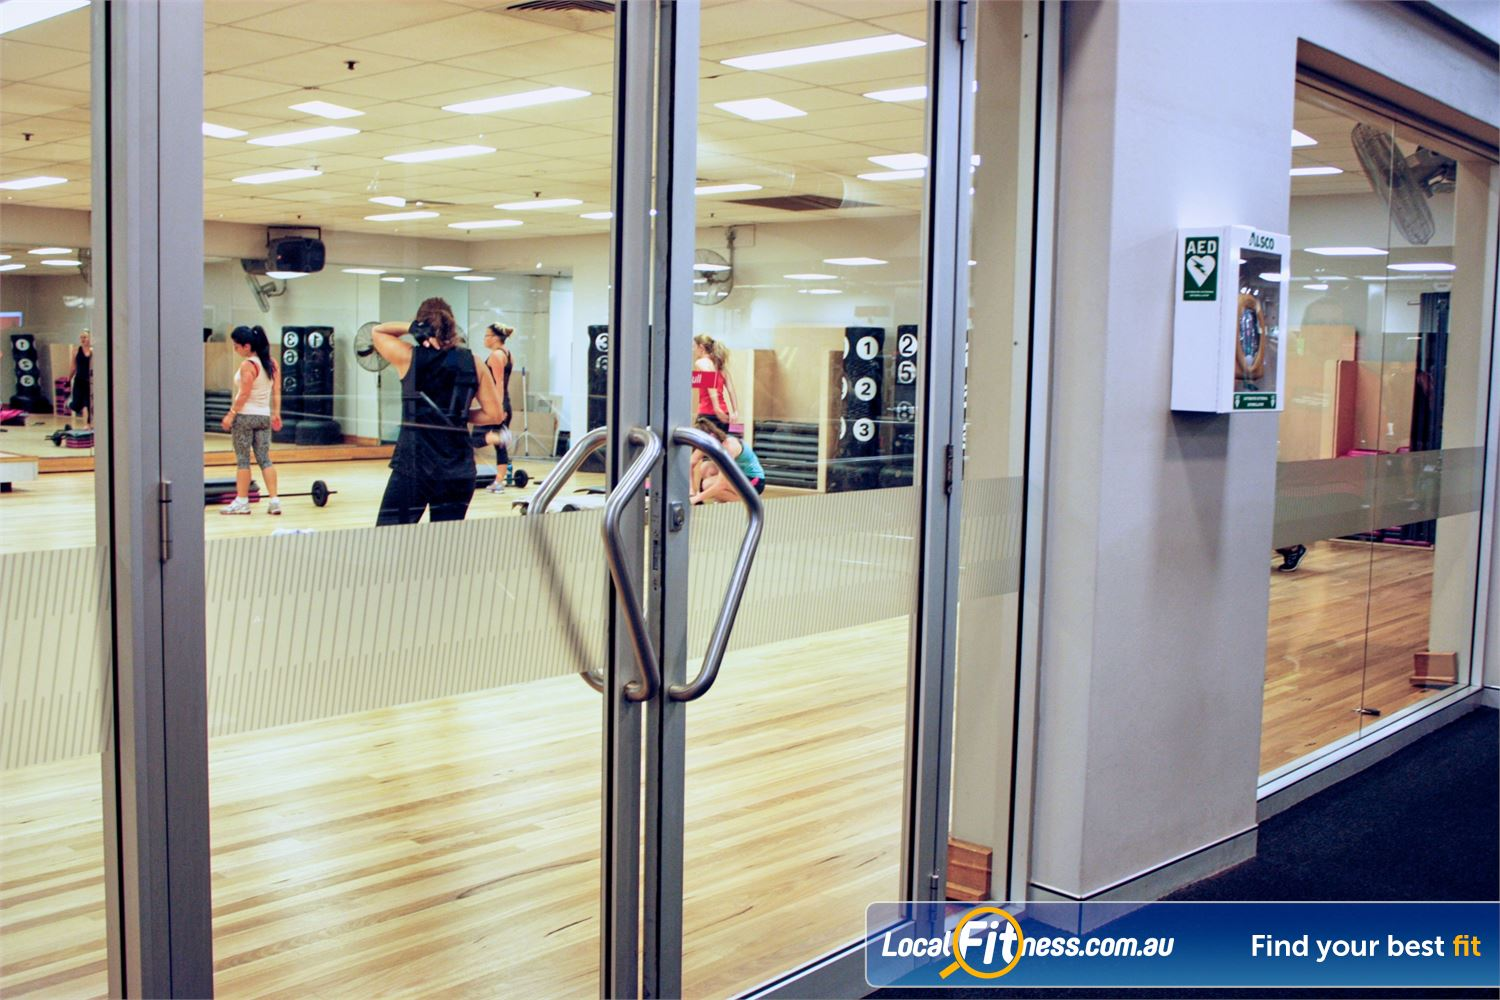 Fitness First Sylvania Over 100 classes per week inc. Sylvania Zumba, Les Mills, Yoga and more.